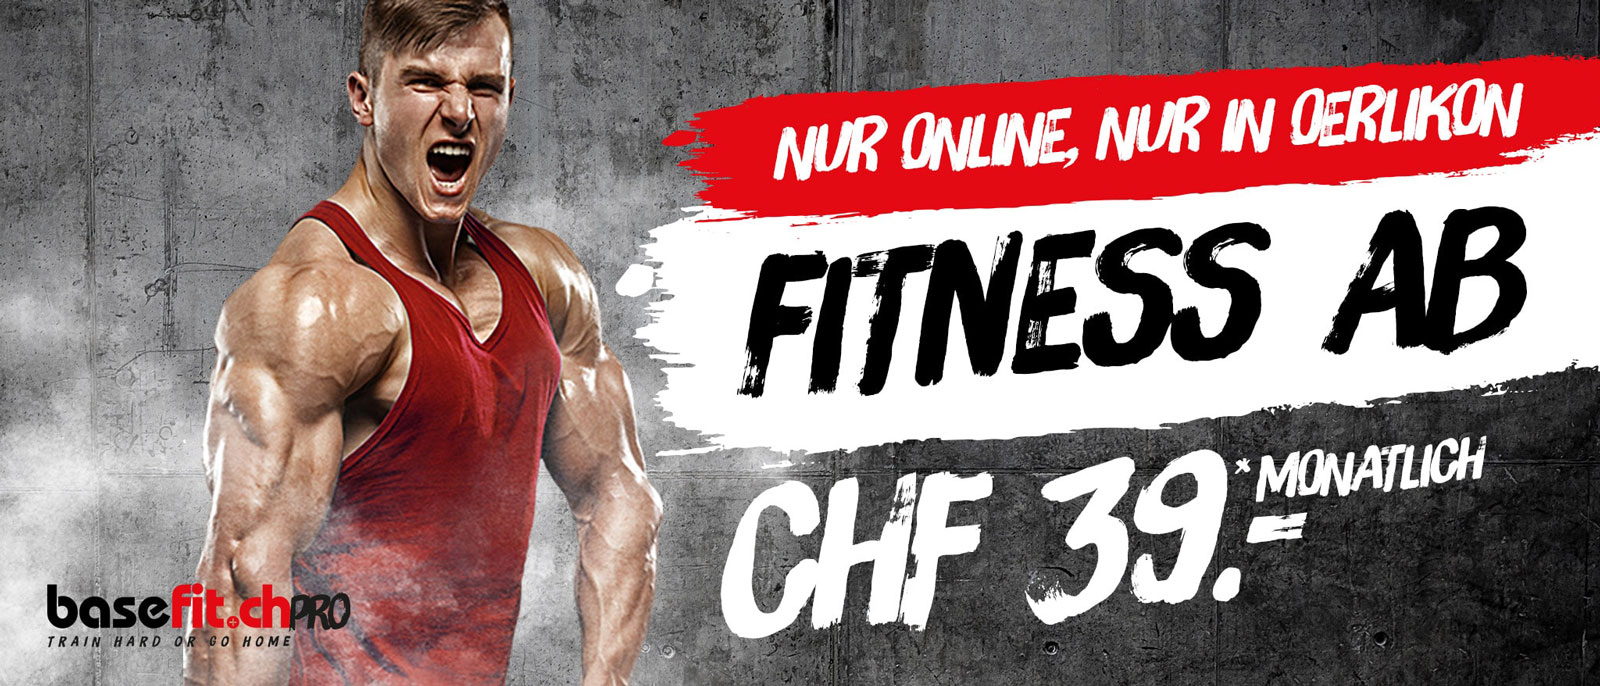 Fitness Monats-Abo ab CHF 39.00 in Oerlikon